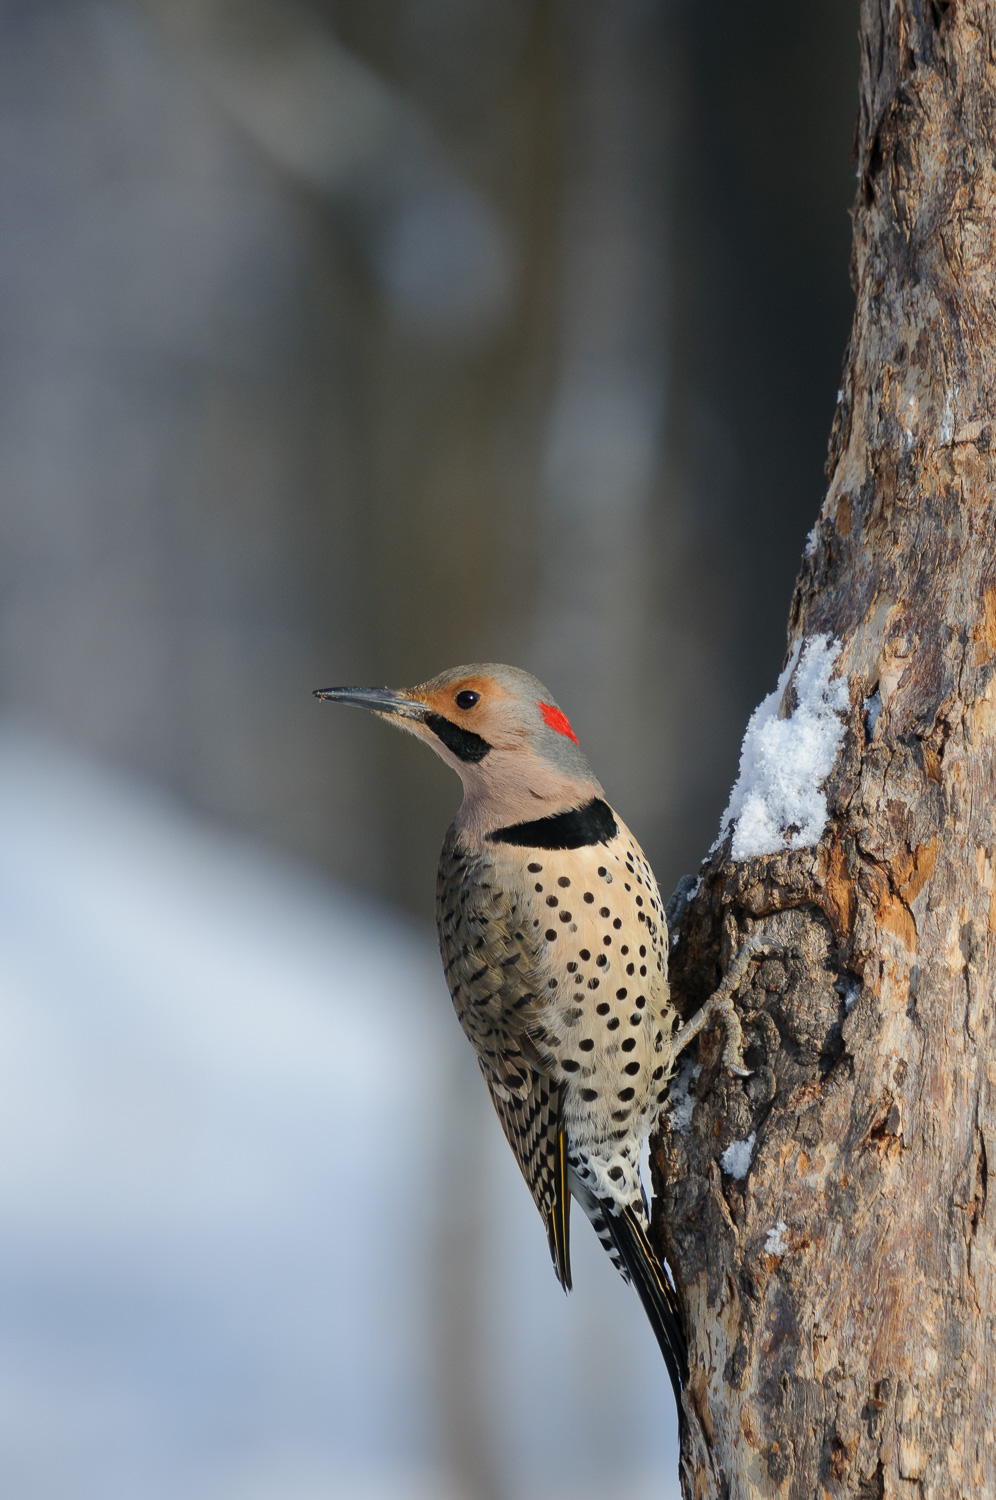 YELLOW-SHAFTED NORTHERN FLICKER ♂️